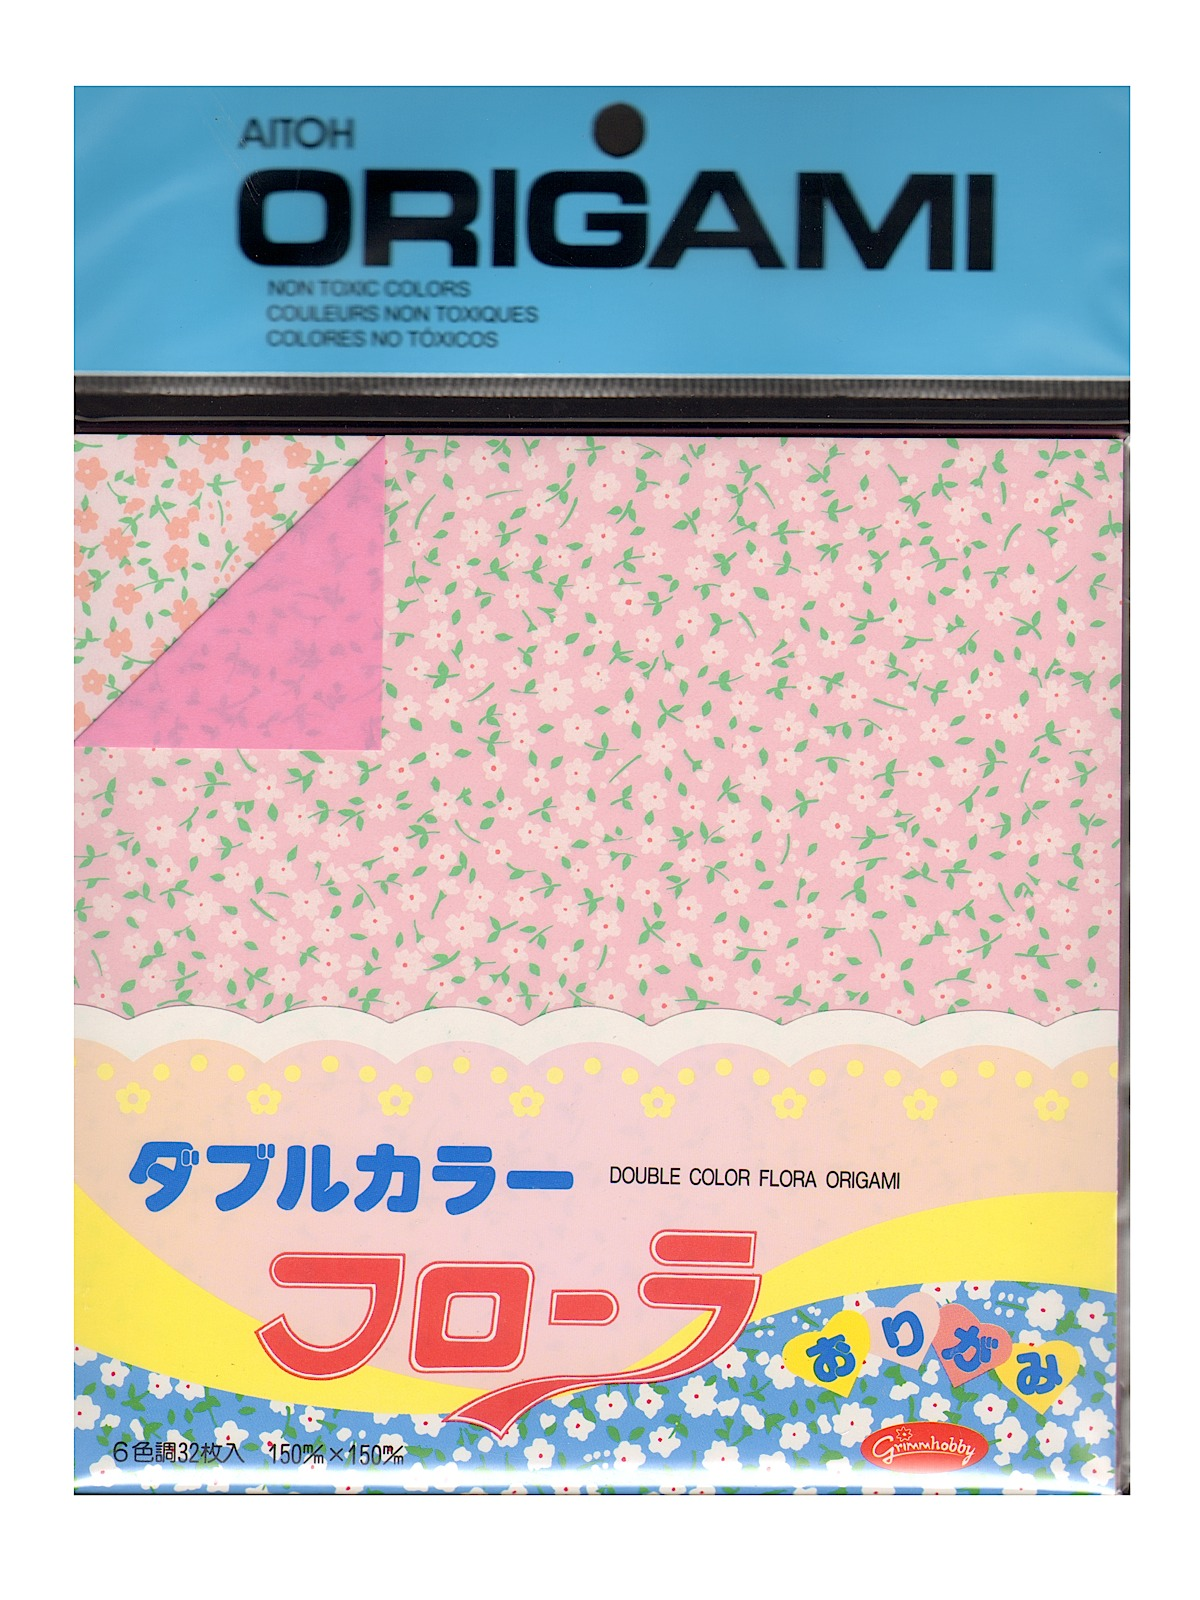 Origami Paper 5 7 8 In. X 5 7 8 In. Double Sided Color Flora 32 Sheets